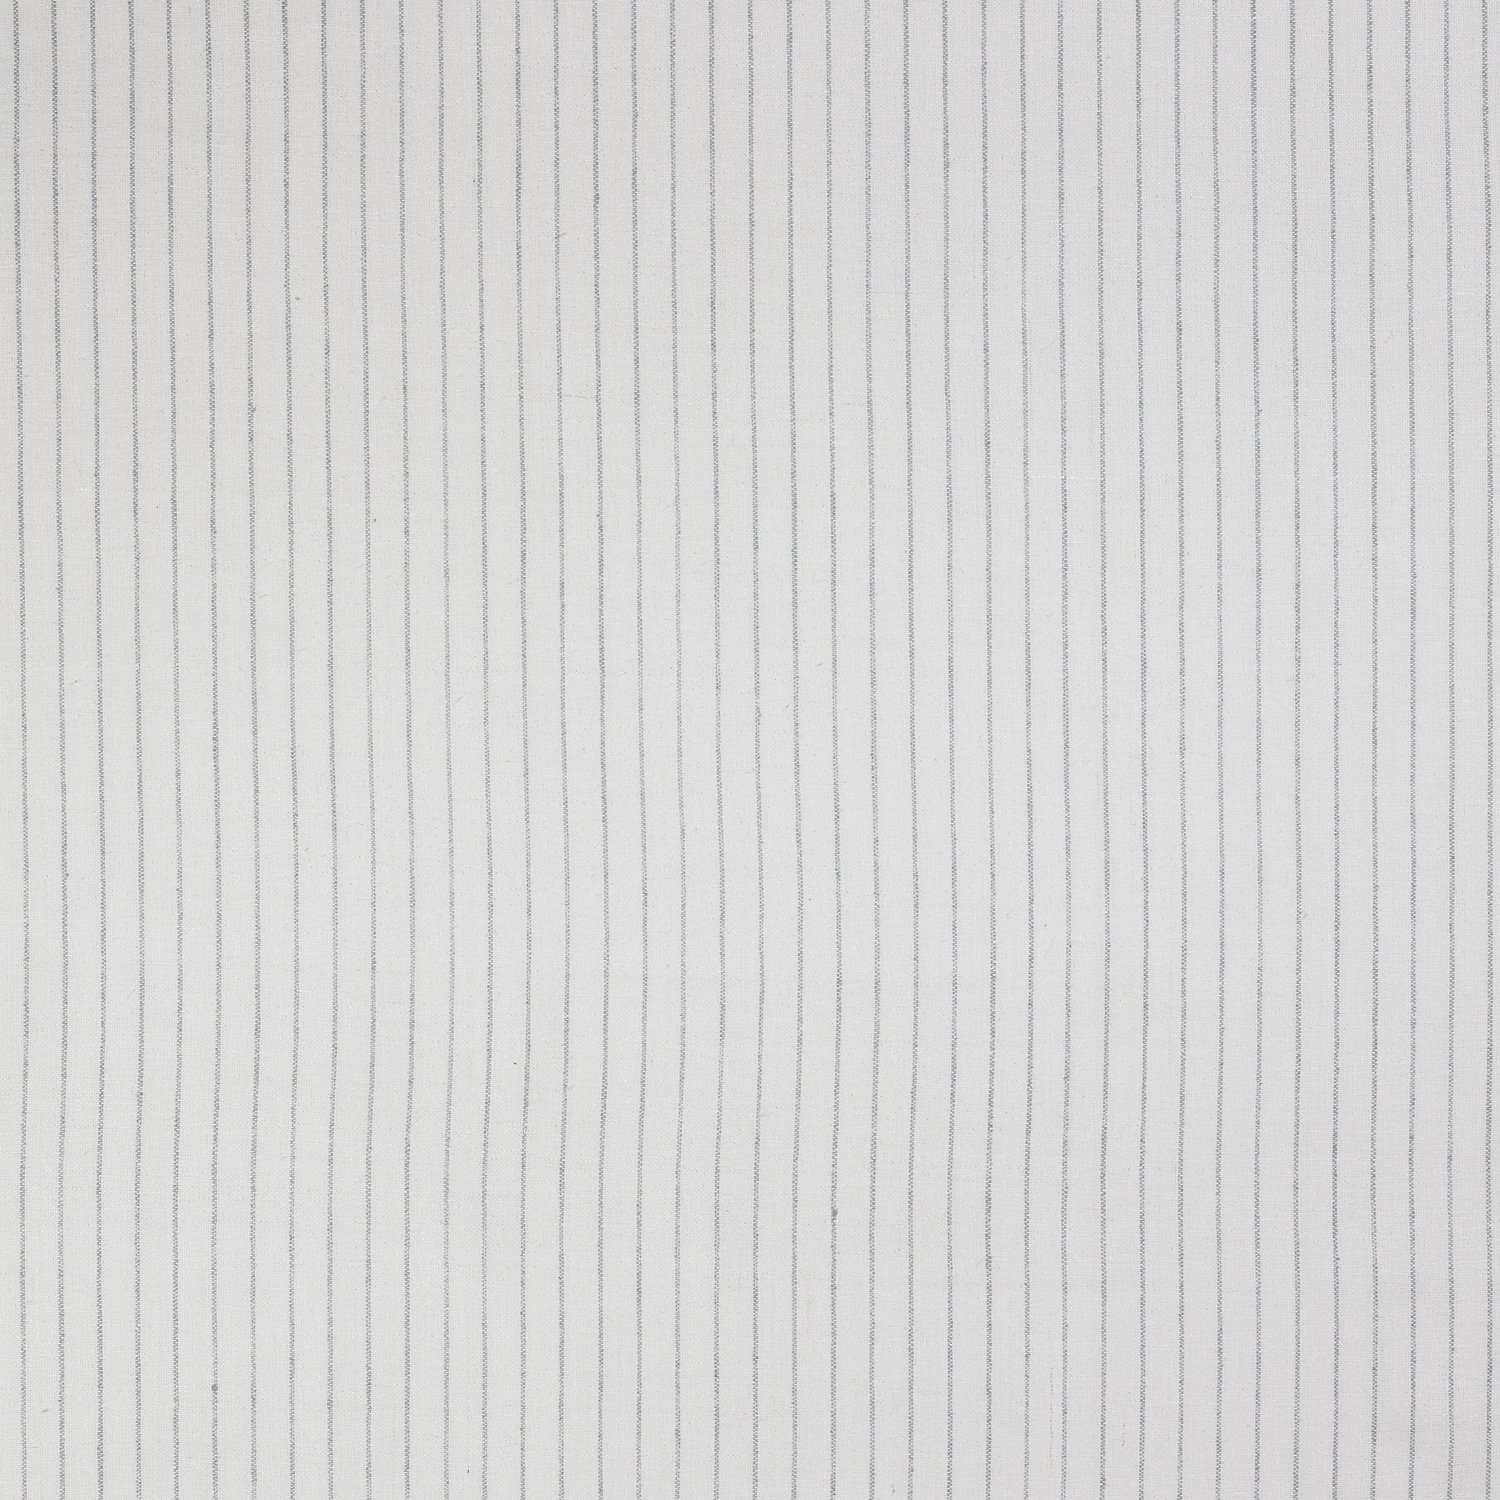 Displaying 17 Images For   Grey Striped Wallpaper 1500x1500